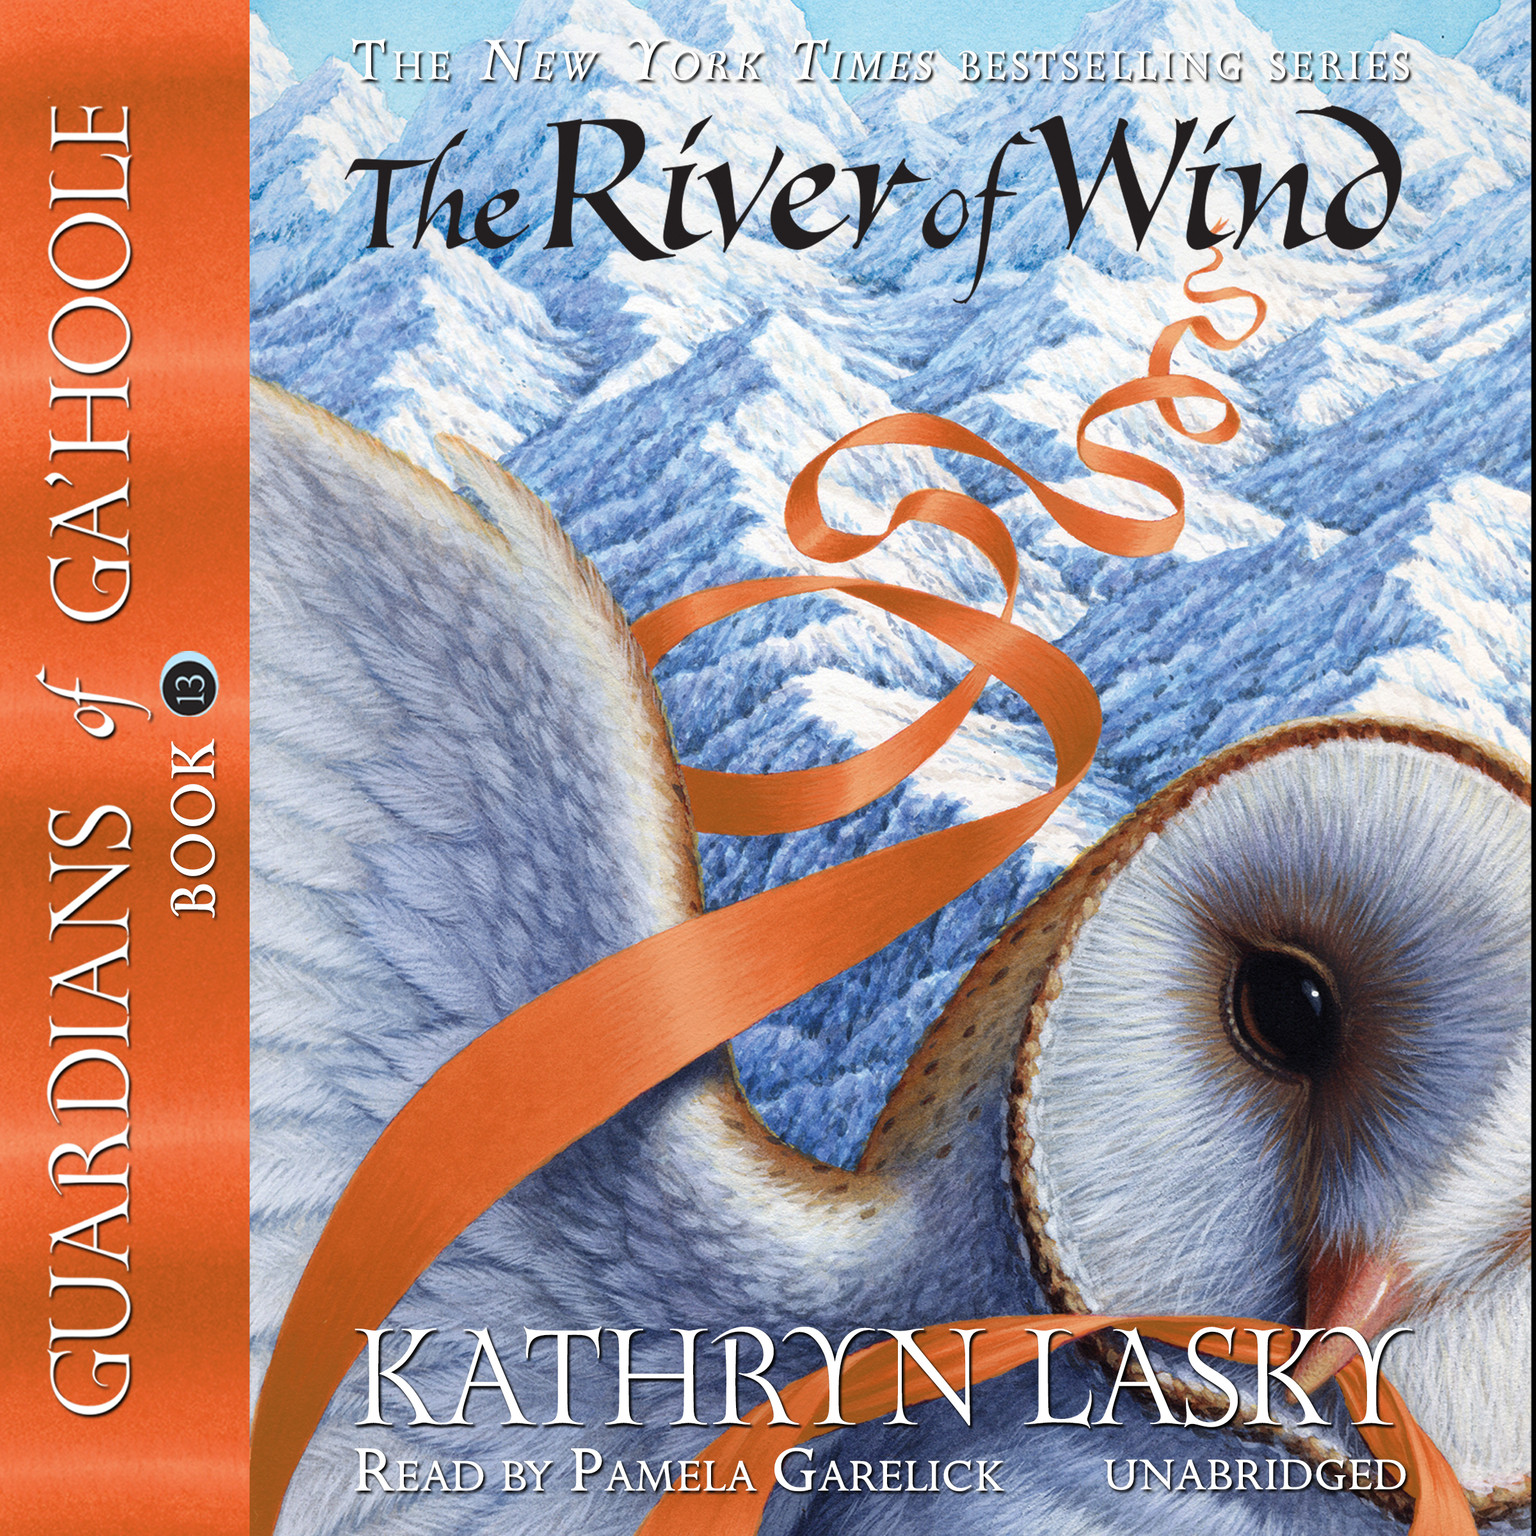 Printable The River of Wind Audiobook Cover Art